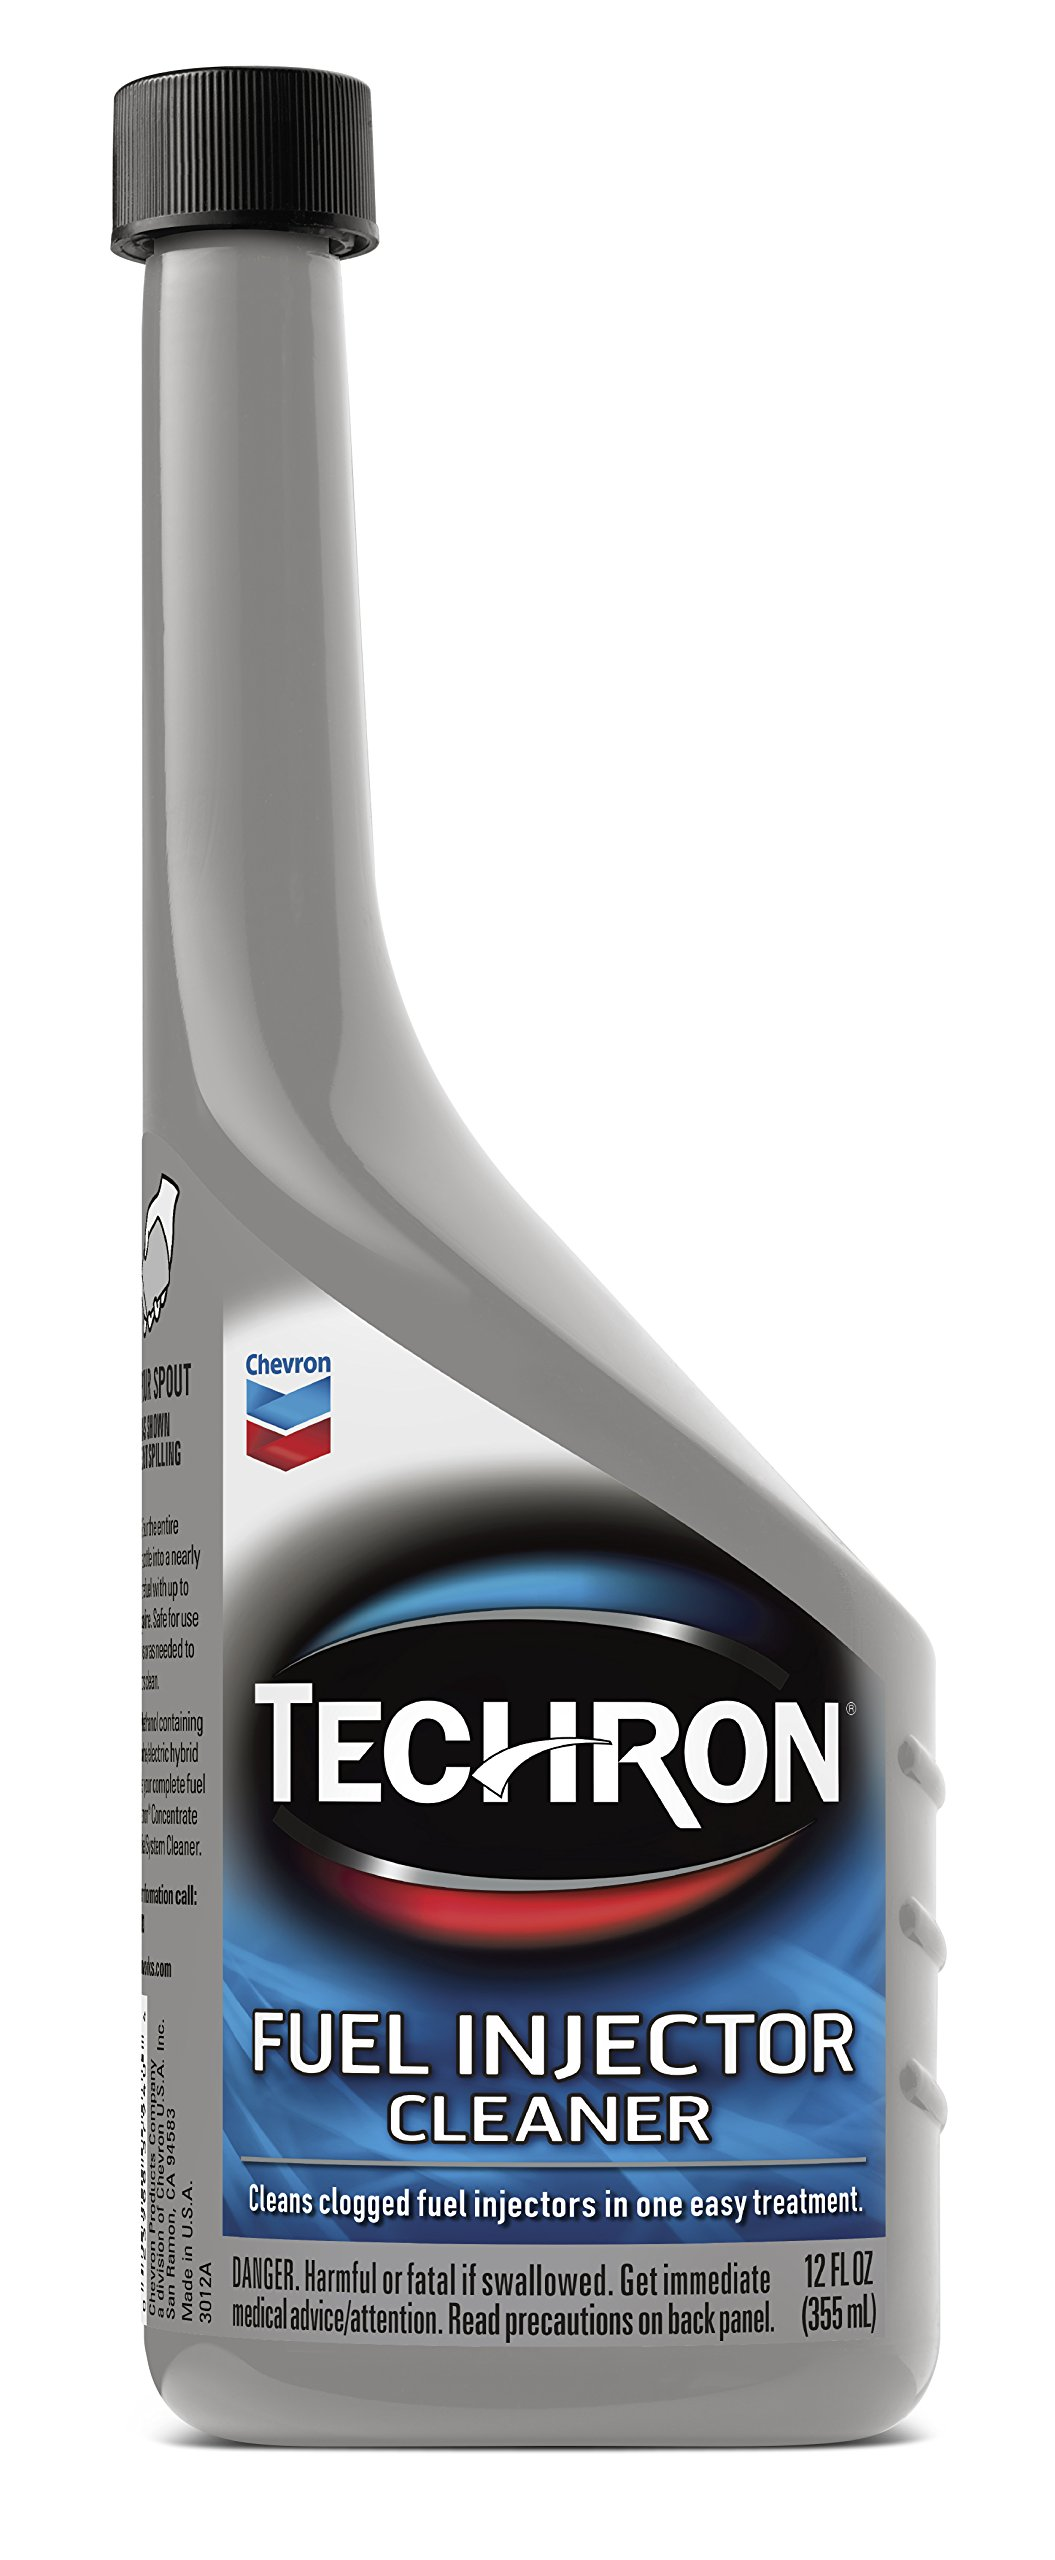 Chevron Techron Fuel Injection Cleaner - 12 oz., (Pack of 6) by Chevron